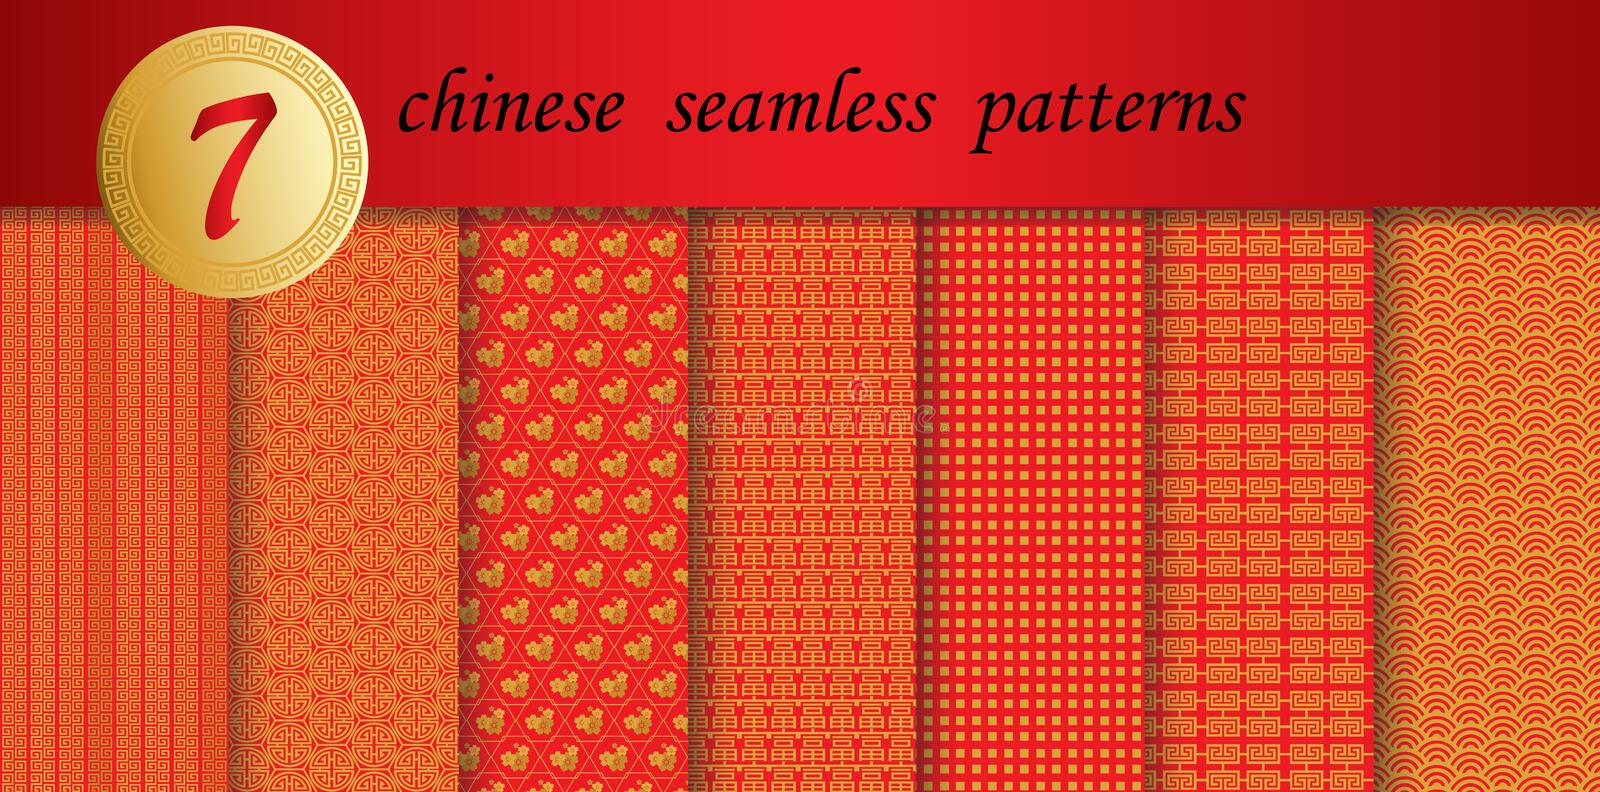 Chinese new year patterns vector illustration